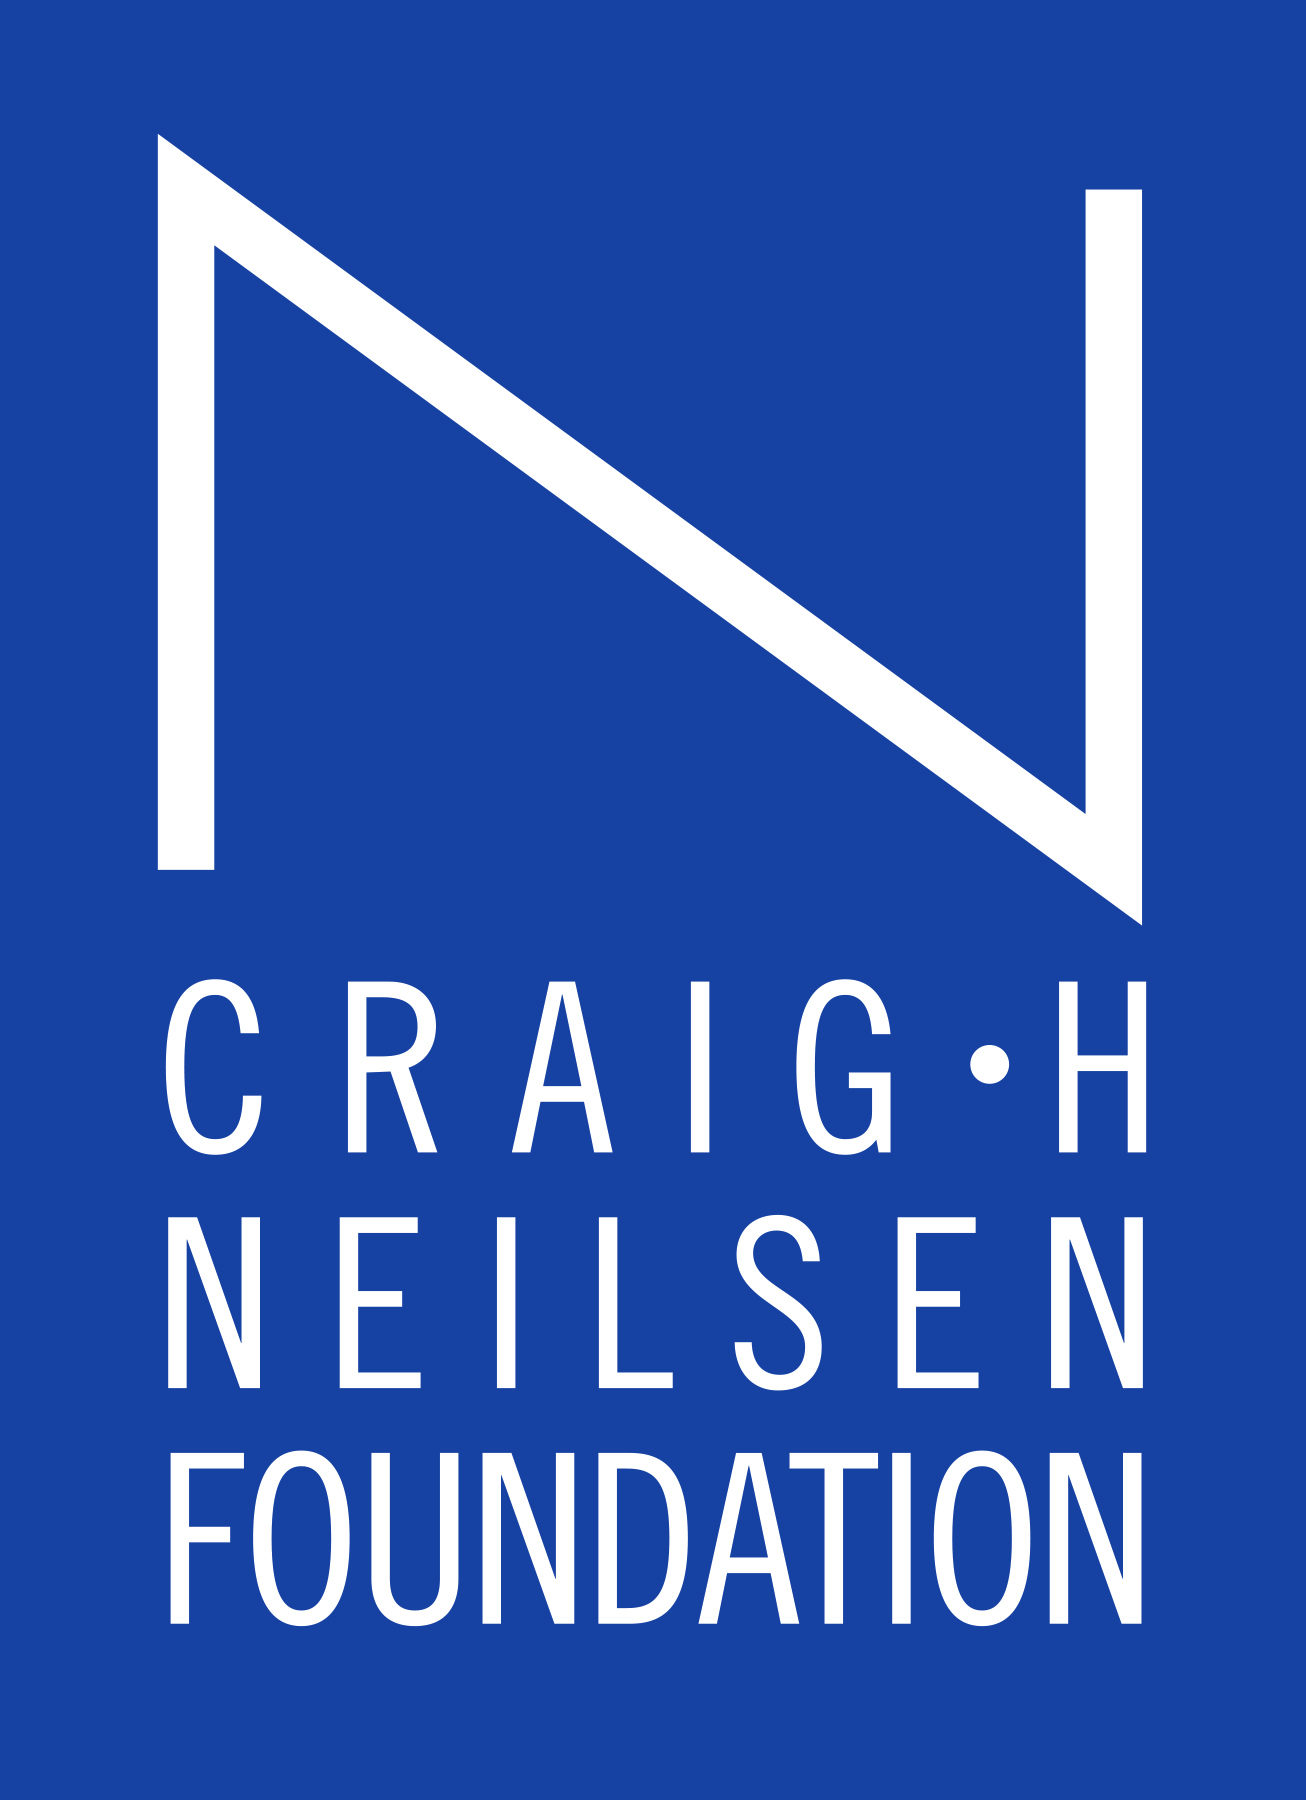 Neilsen Foundation logo